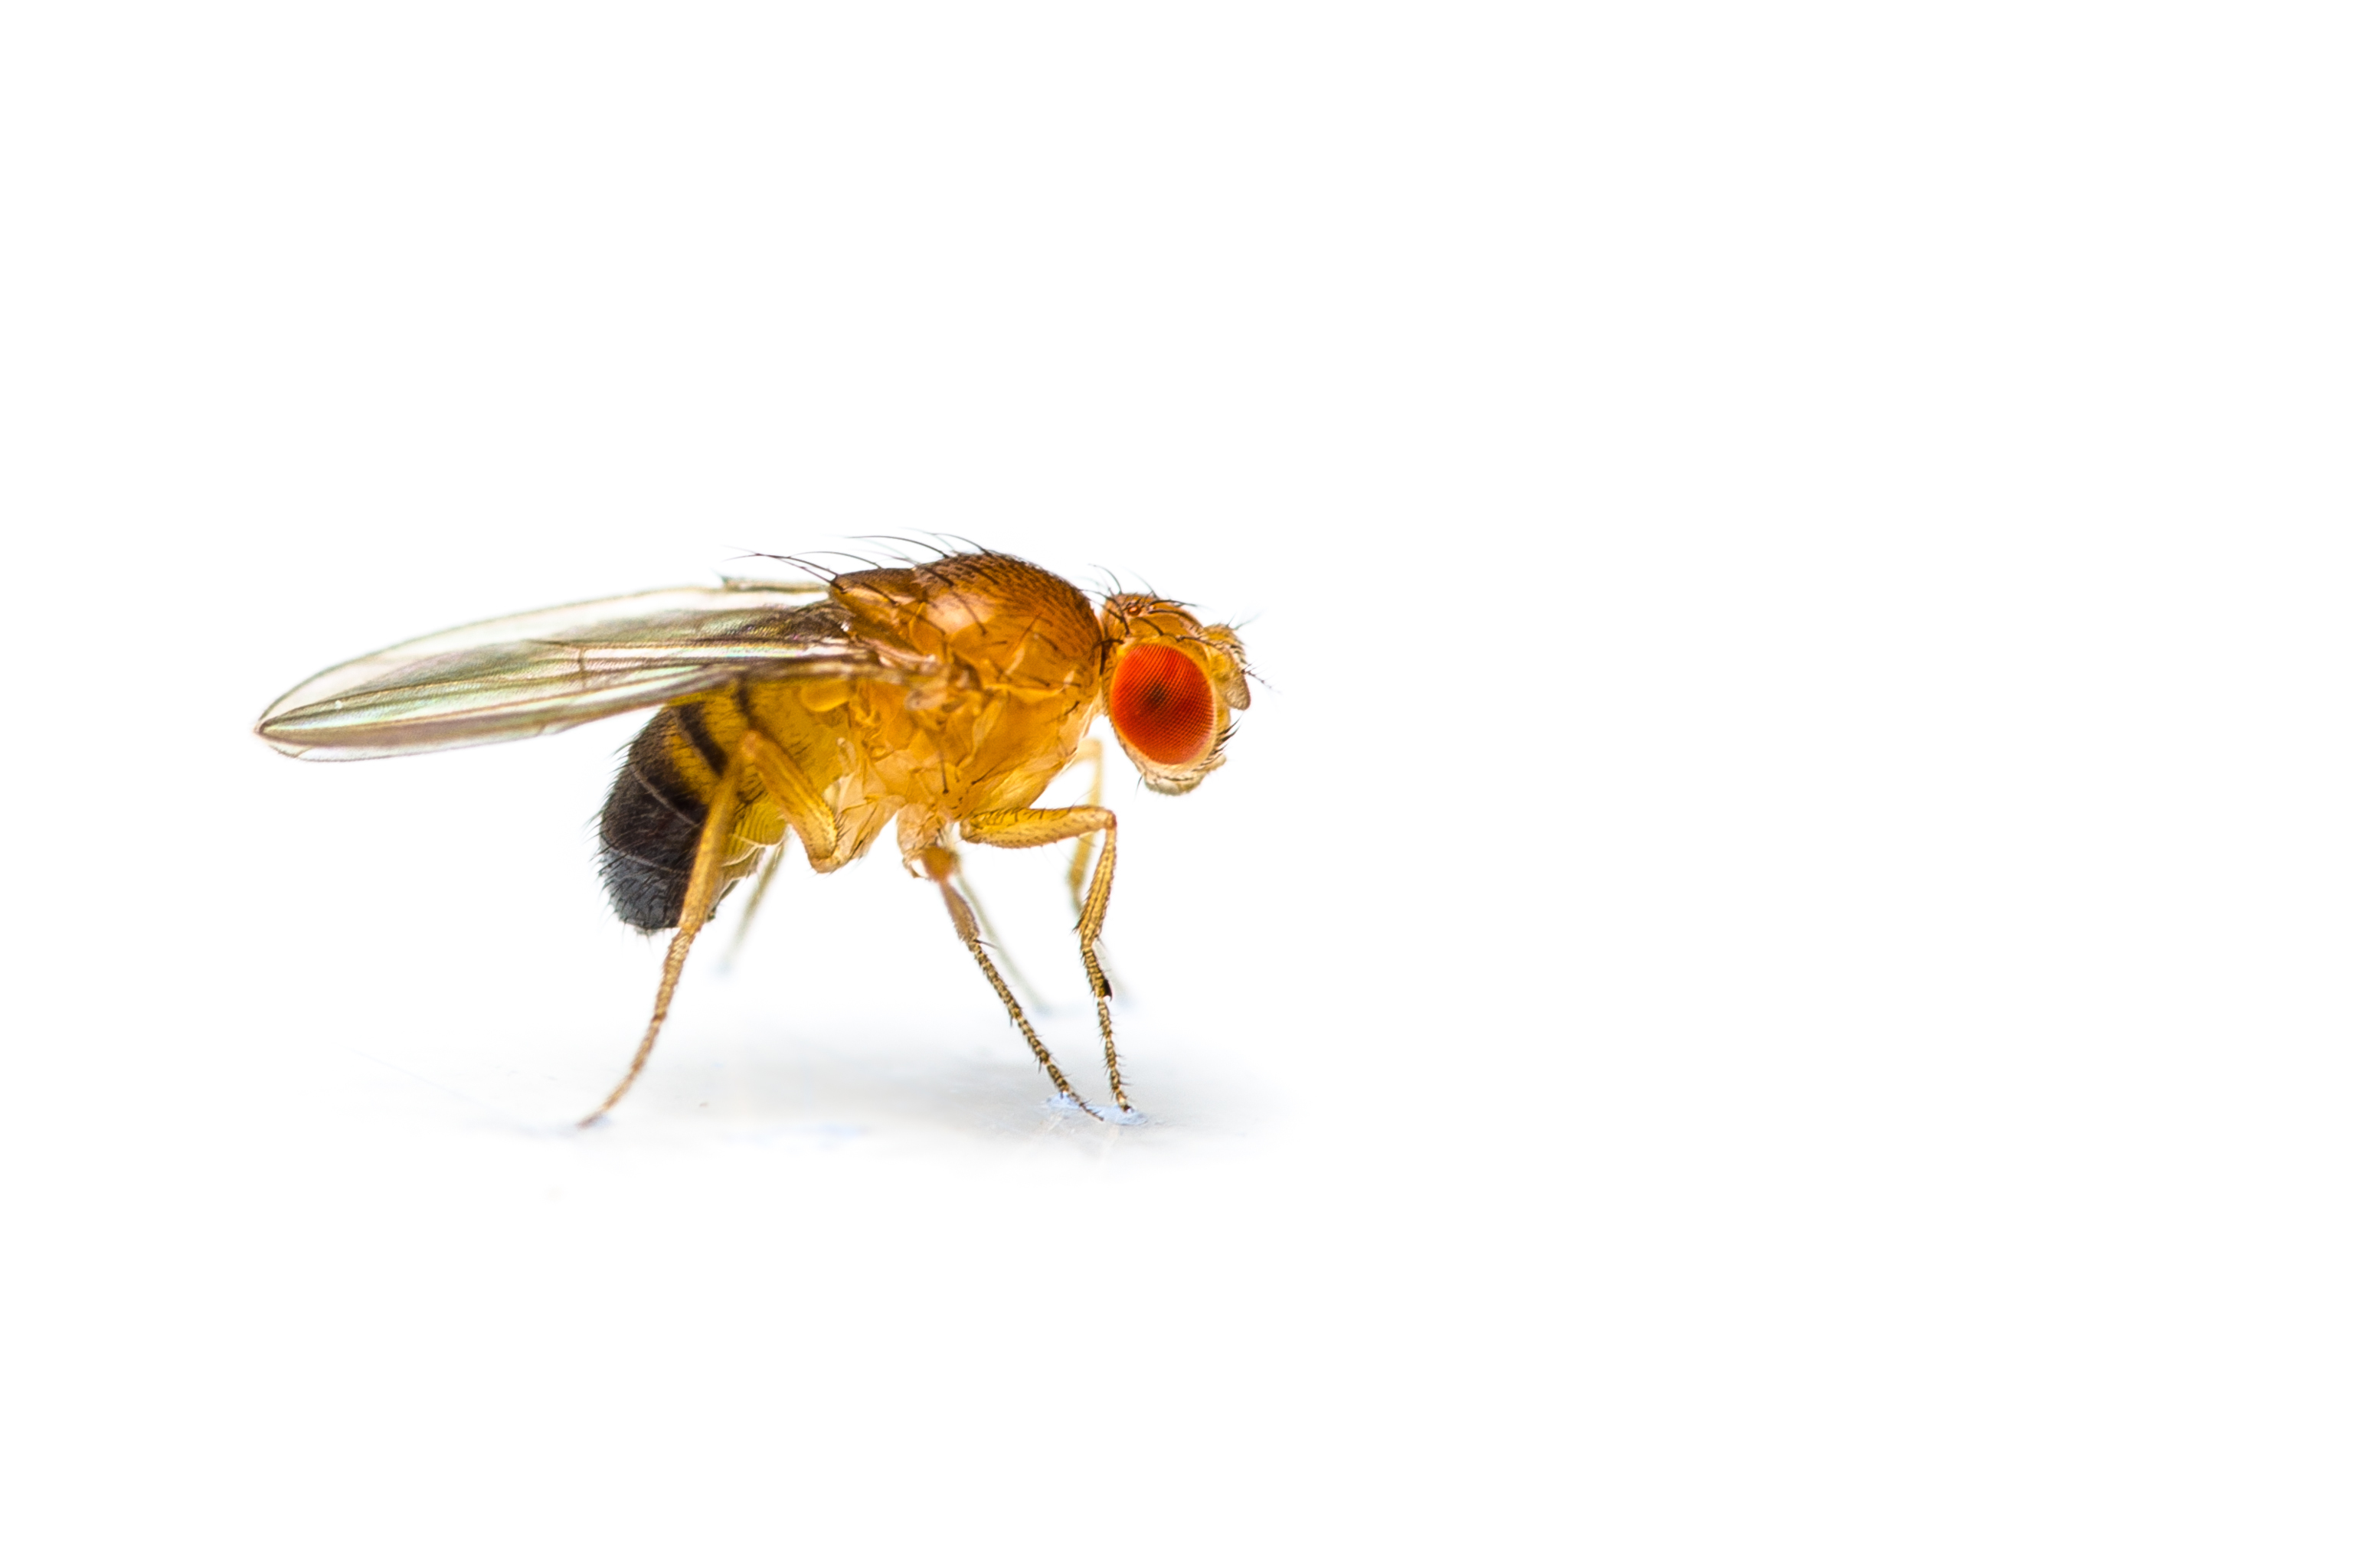 Paralyzable Drosophila (fruit fly)